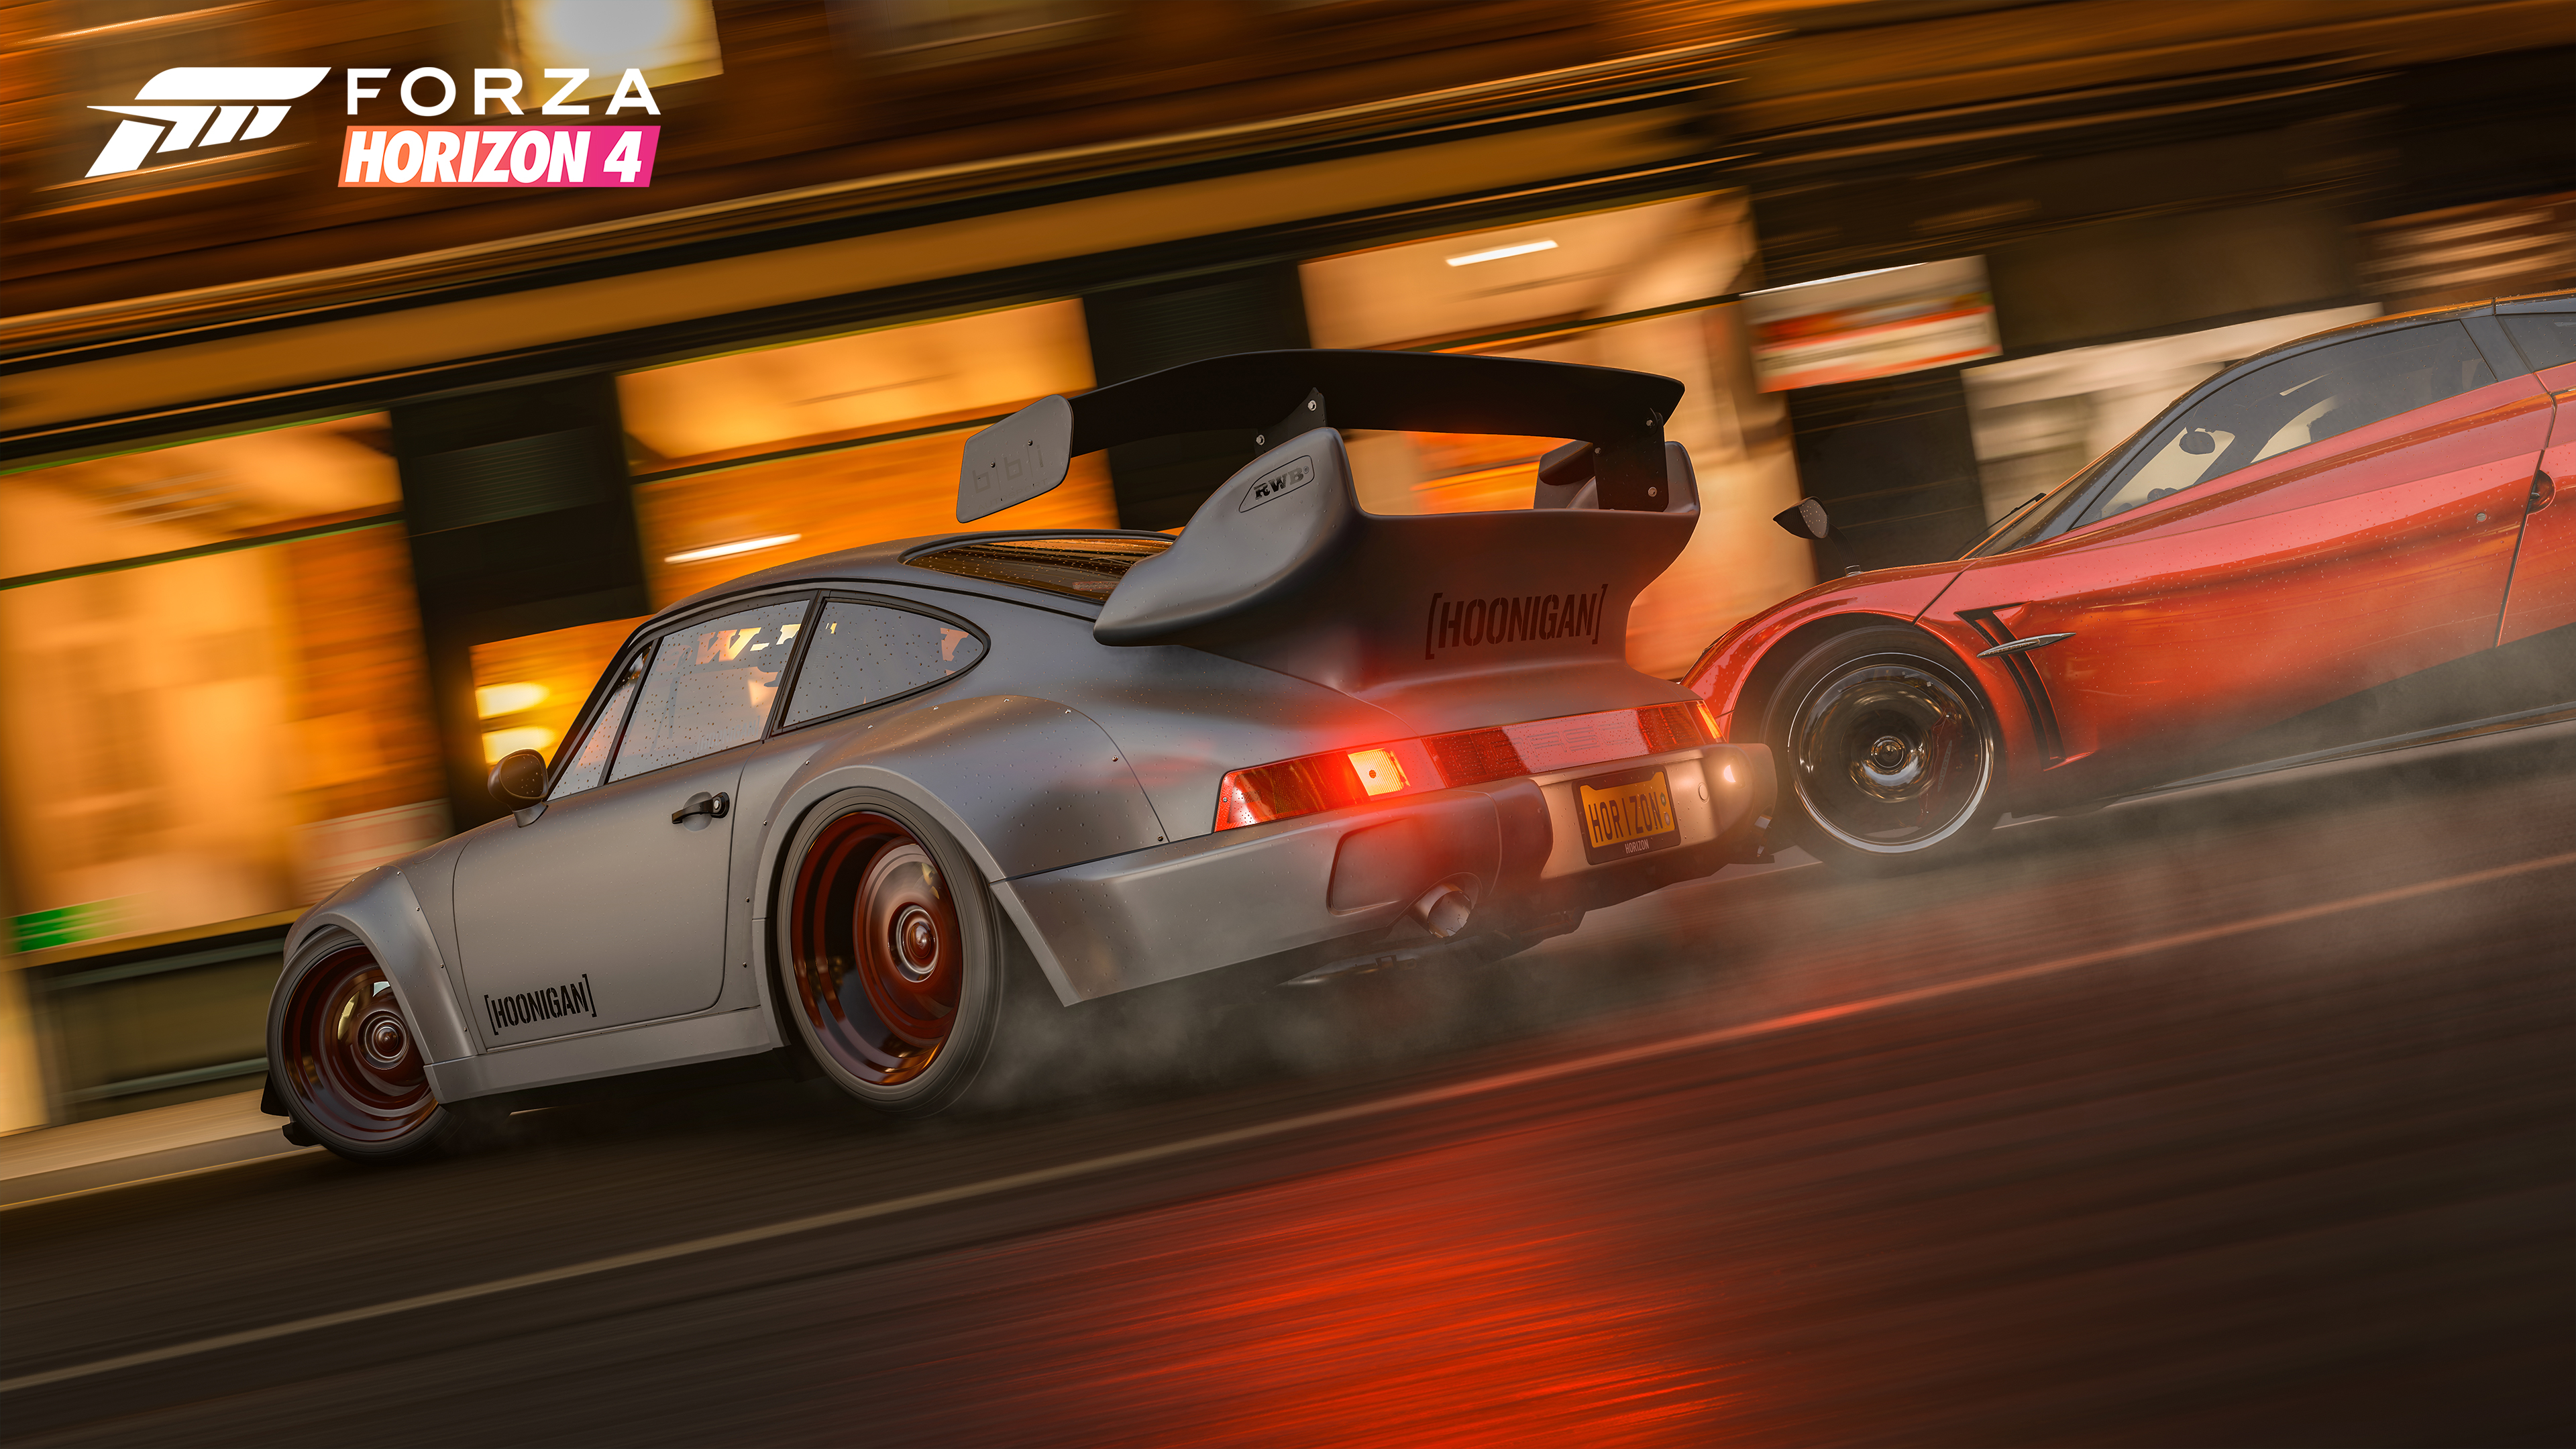 How To Change Cars In Forza Horizon